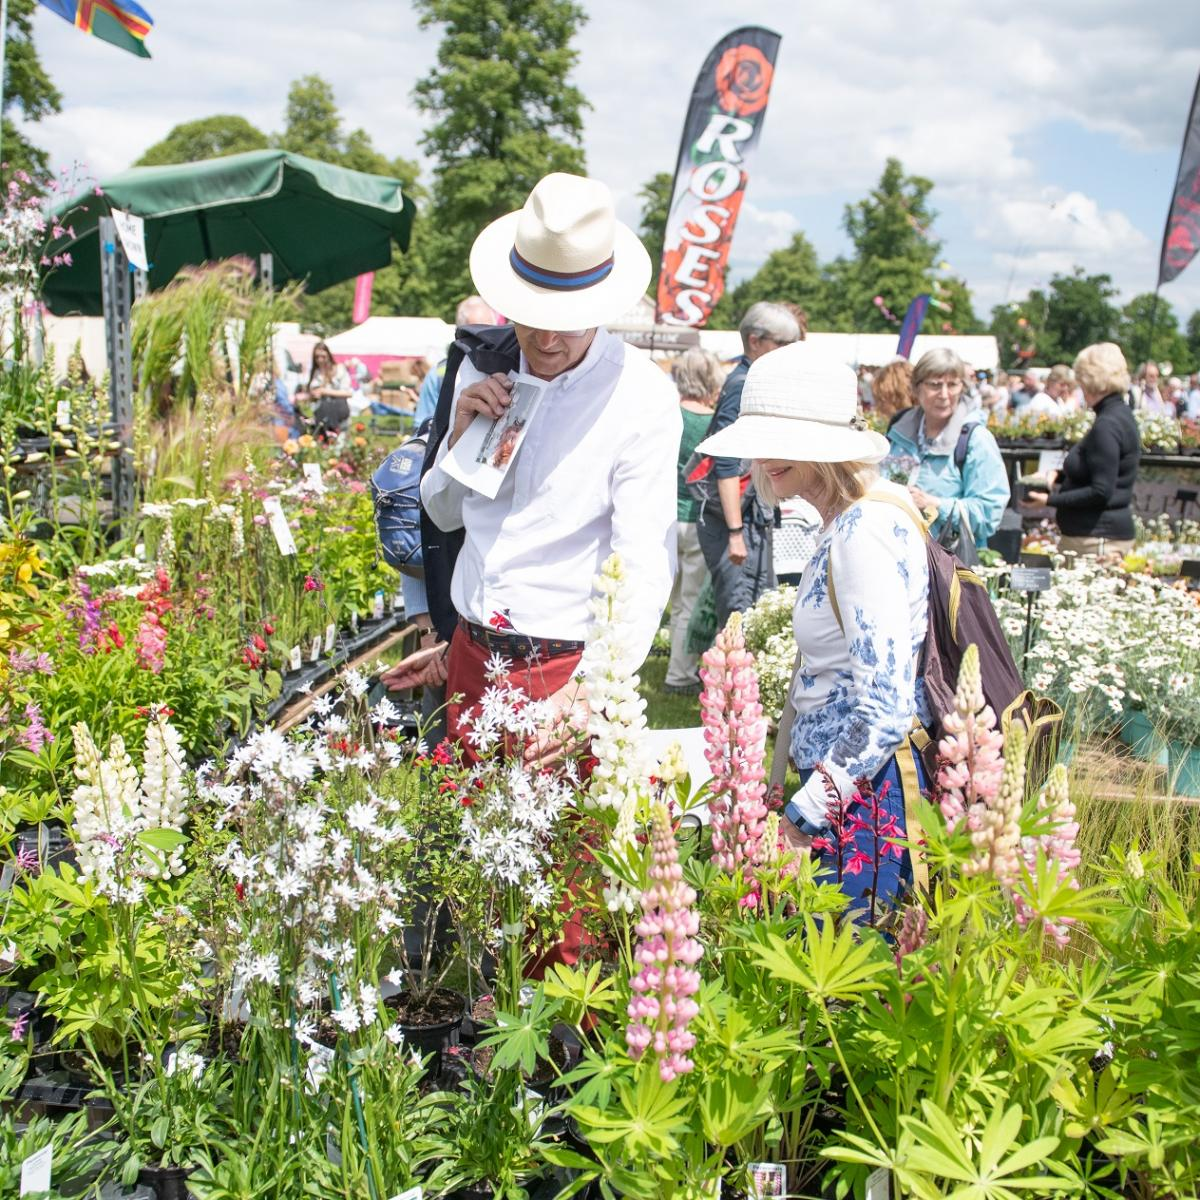 Blenheim Palace Flower Show 2021 - Gallery Image 02